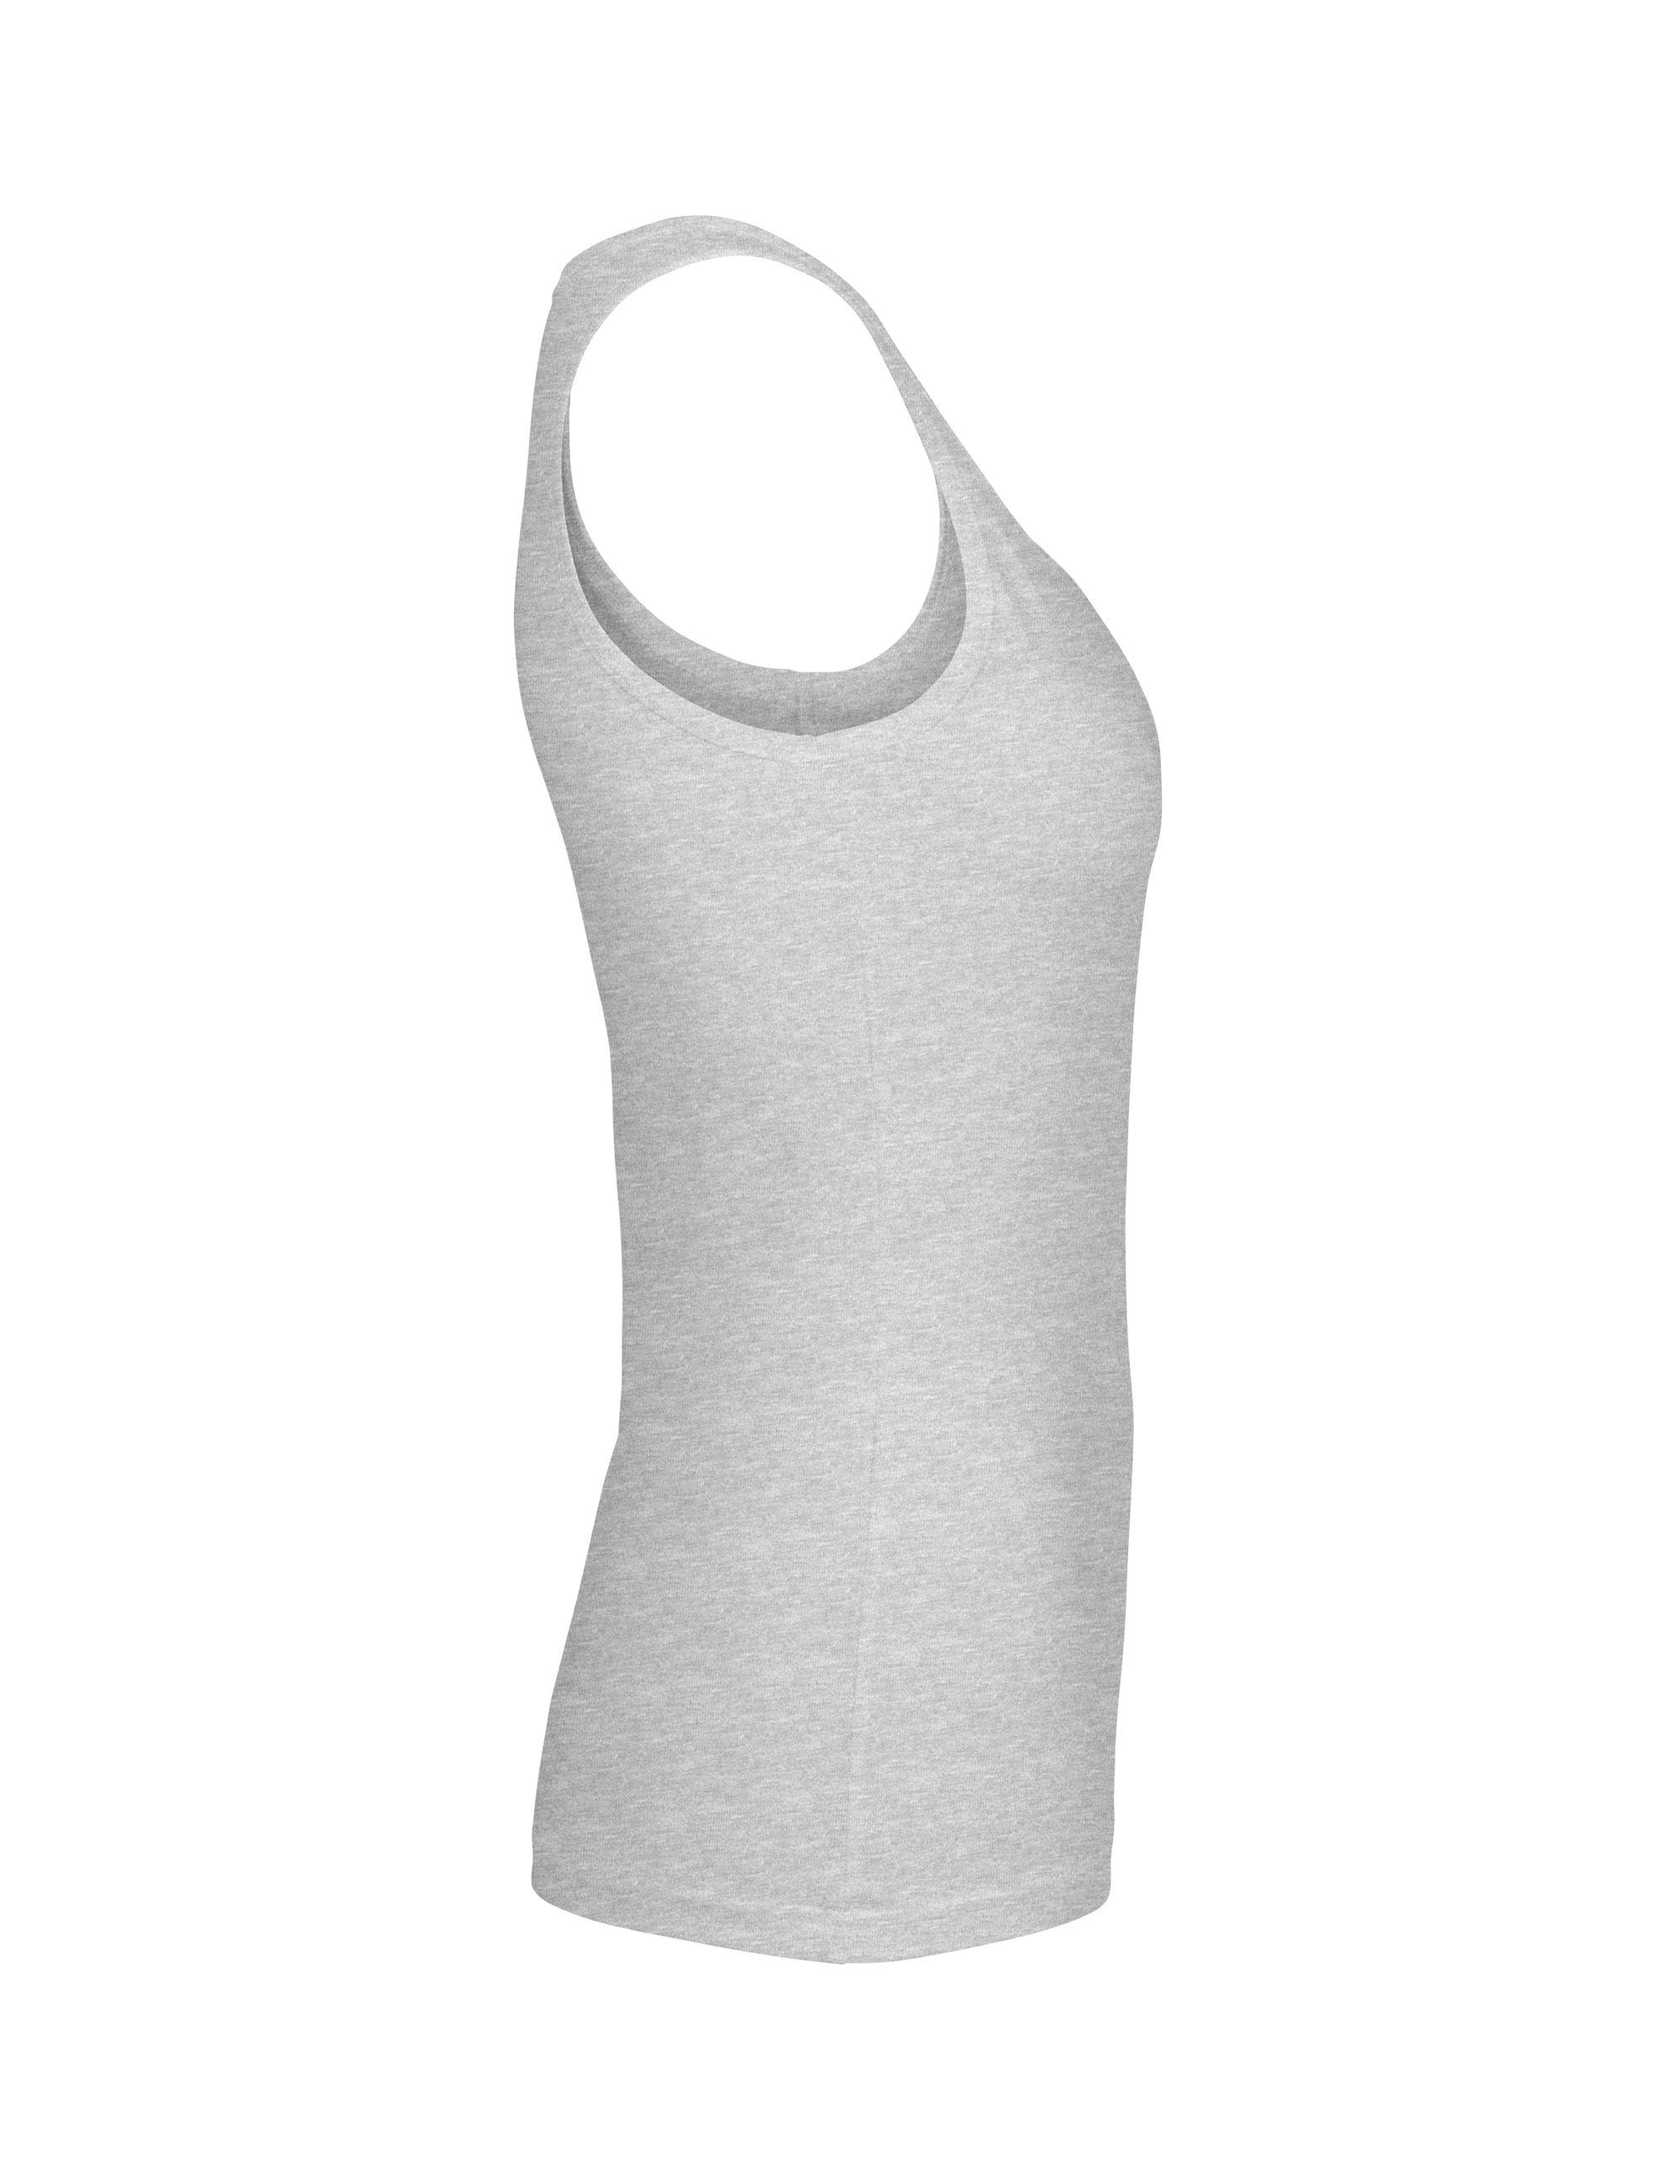 O81300 Ladies Tank Top i Sport Grey